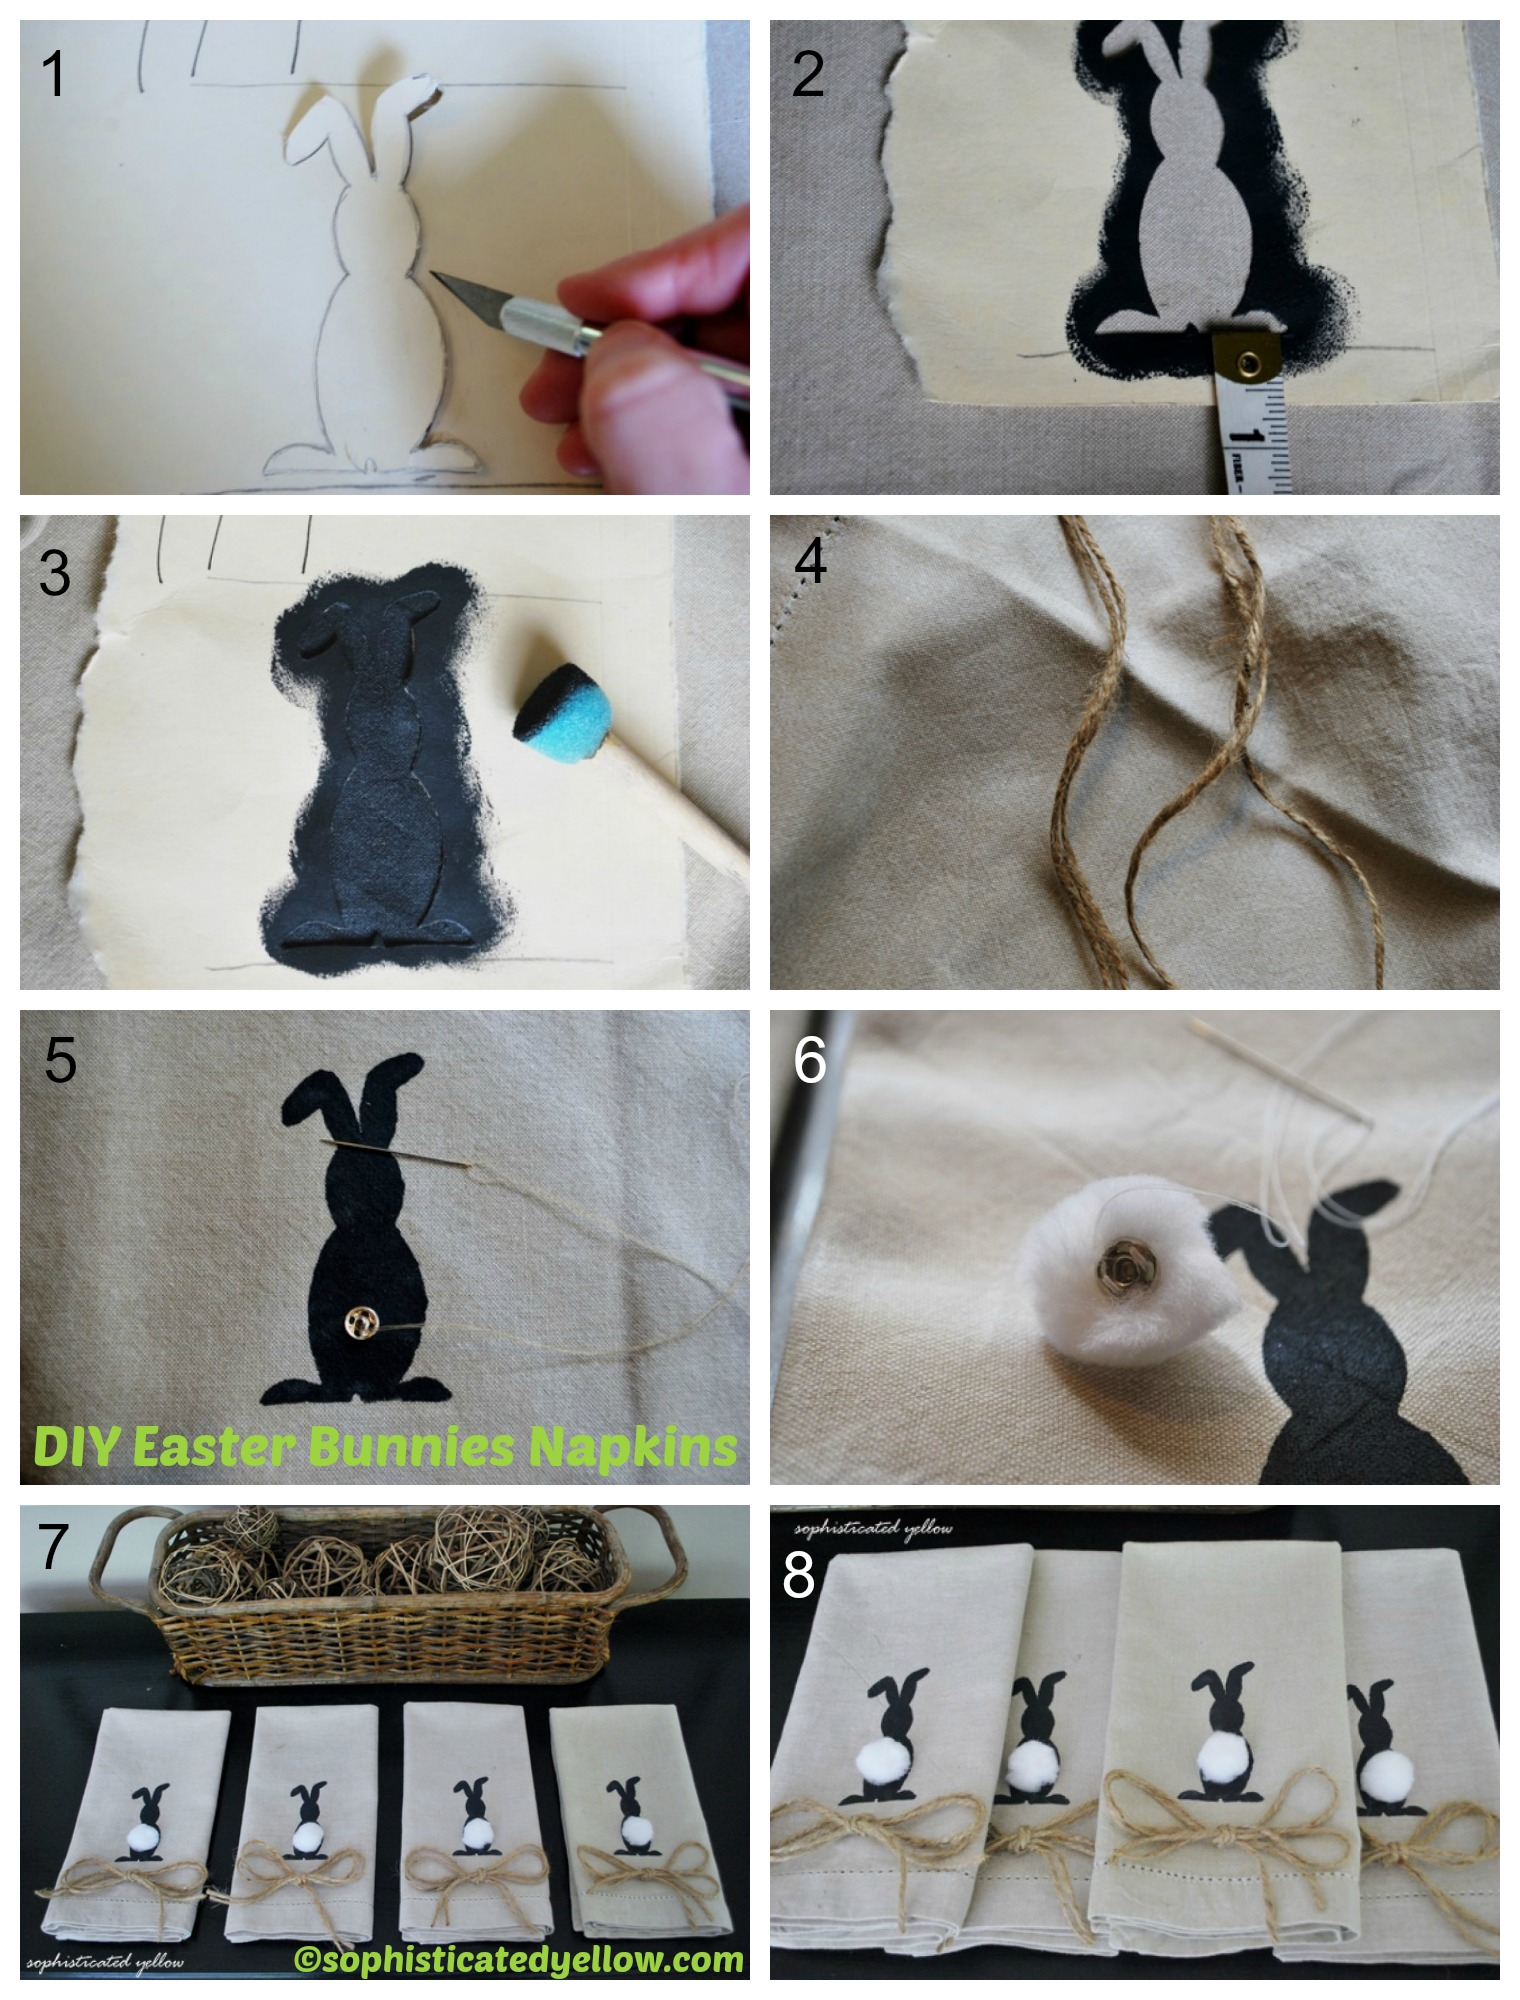 How to make Easter Bunnies Napkins